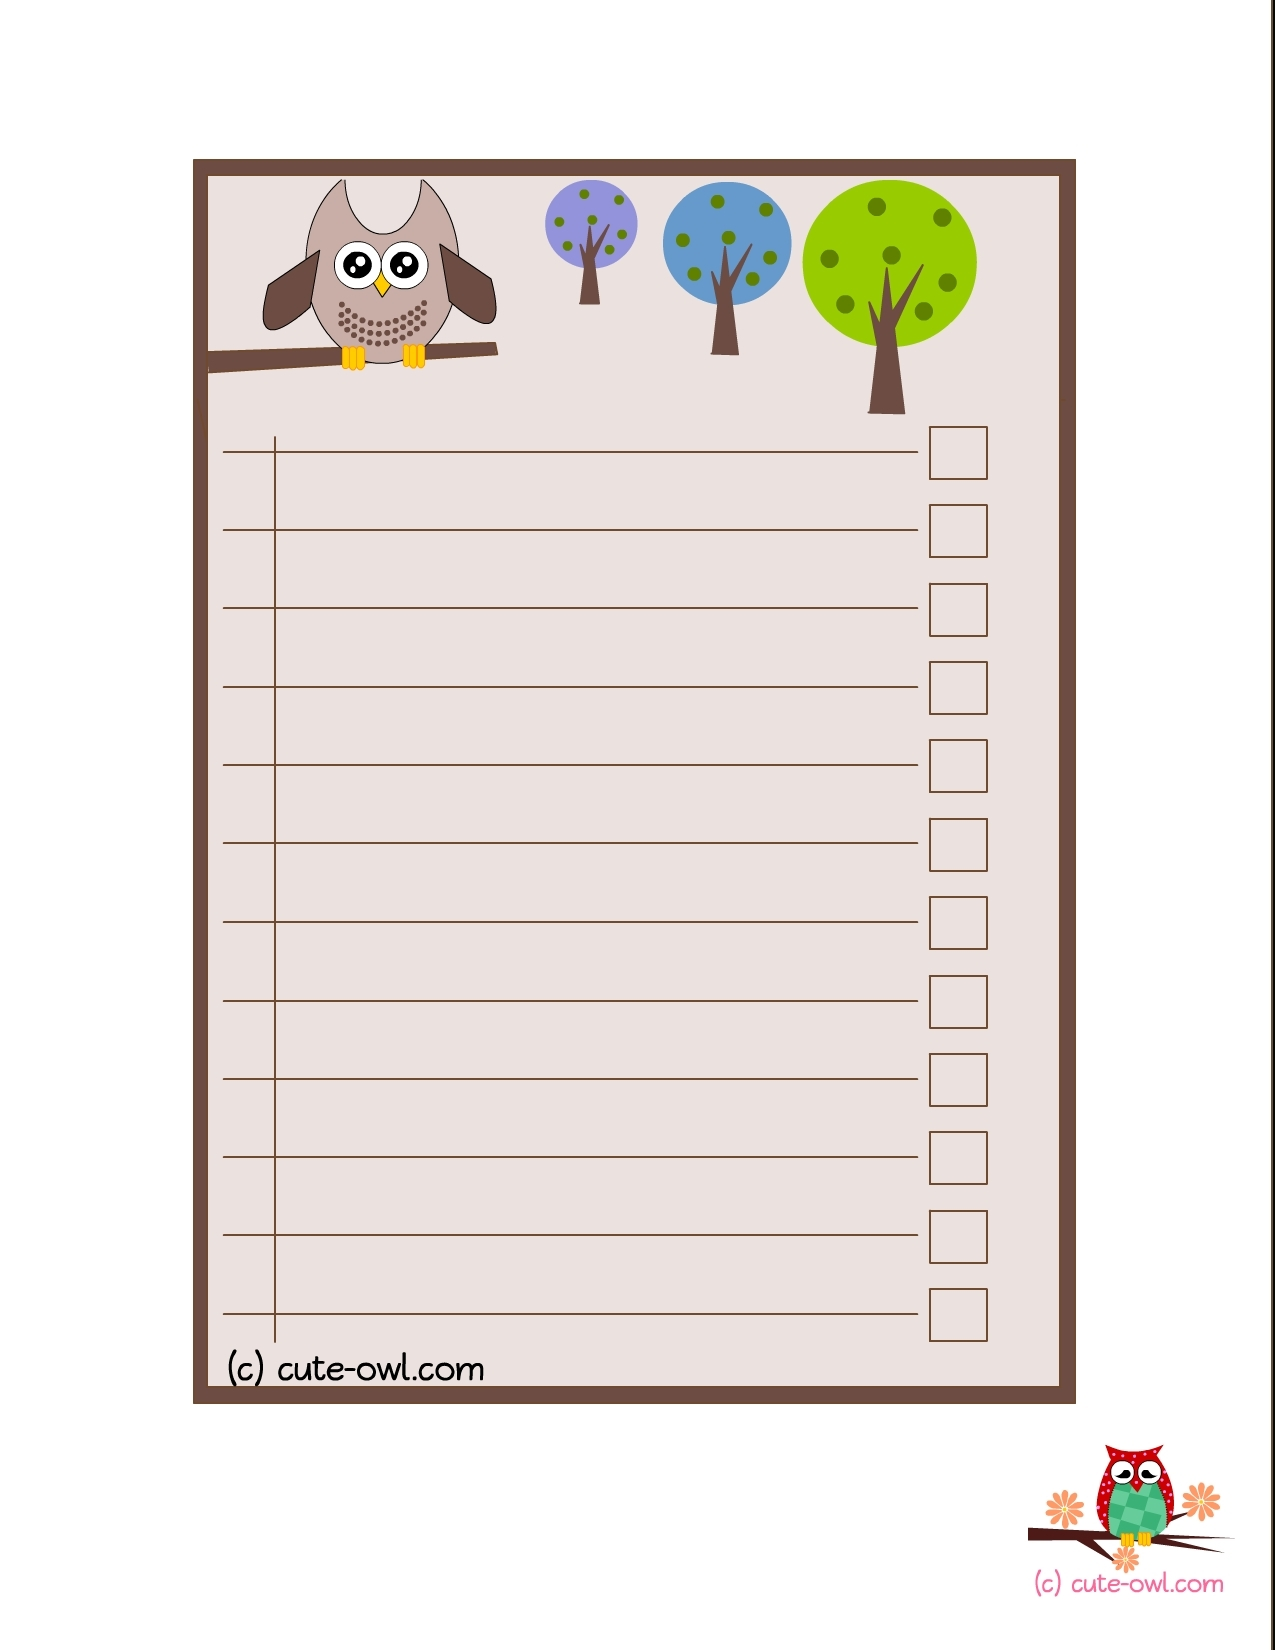 Cute Checklist Template | World Of Example throughout Cute Checklist Template 22064